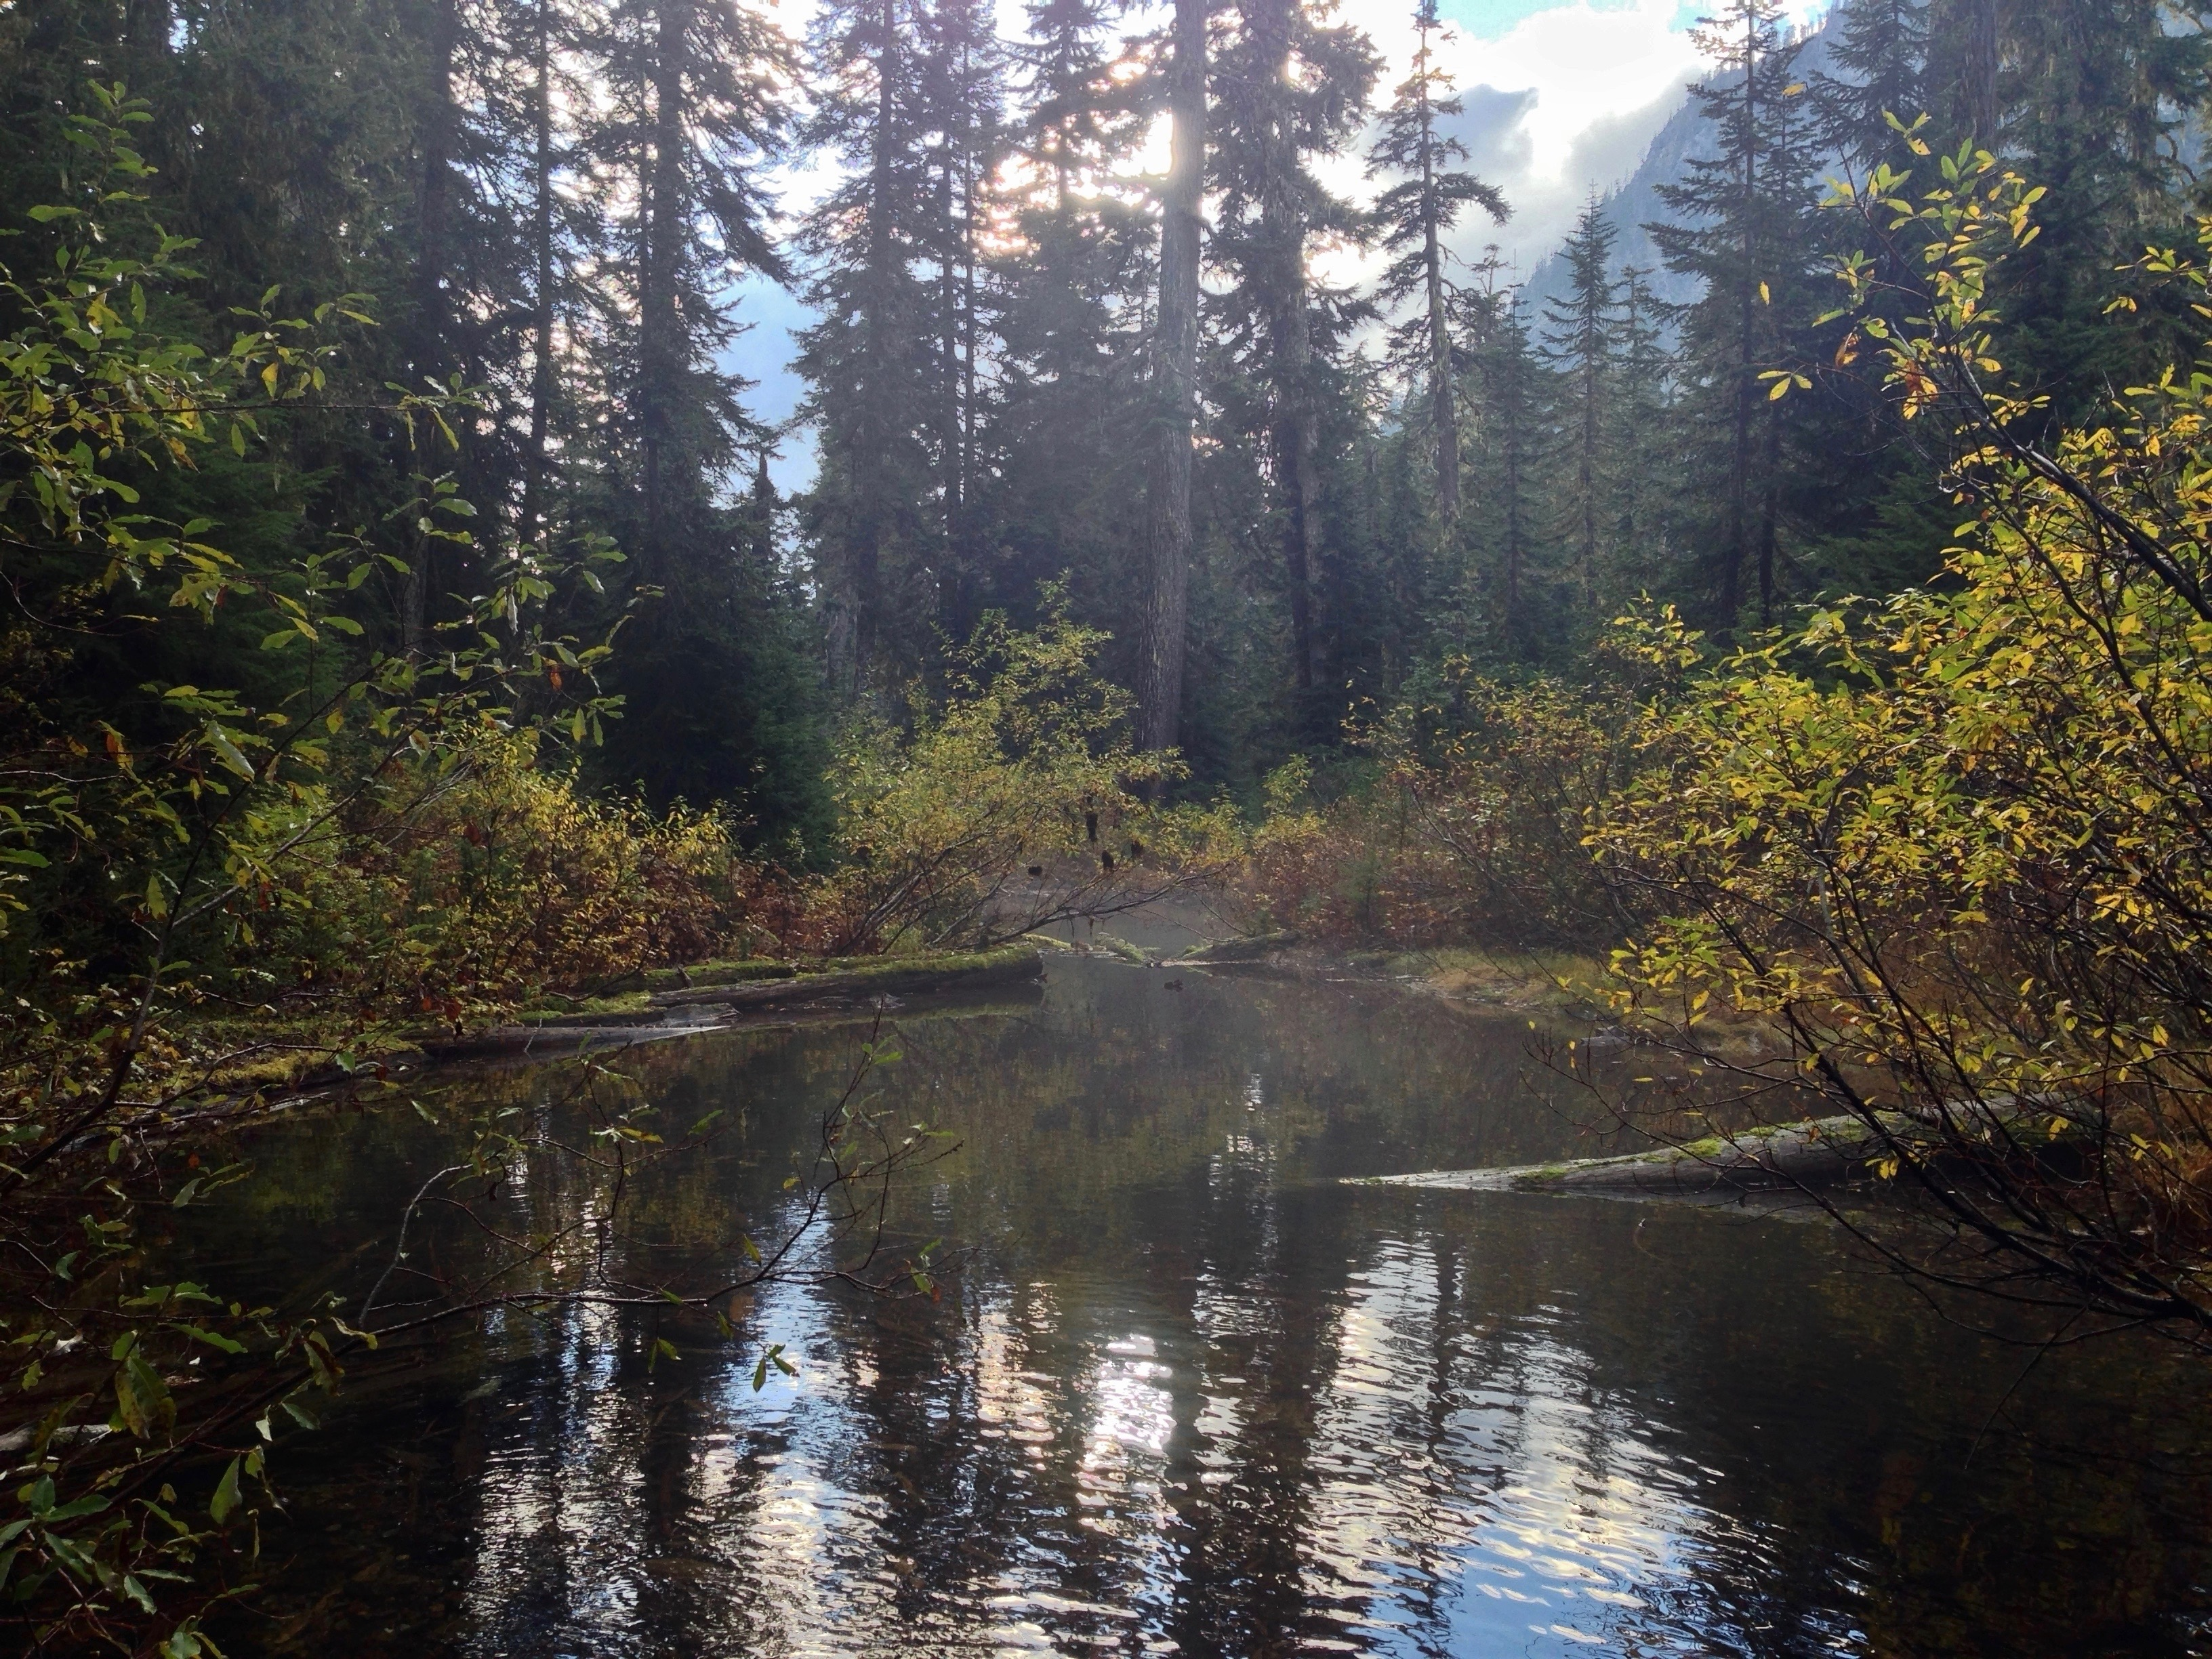 Mist rises from a quiet backwater on Commonwealth Creek. Commonwealth Basin – Red Pass Trail, October 19, 2014.